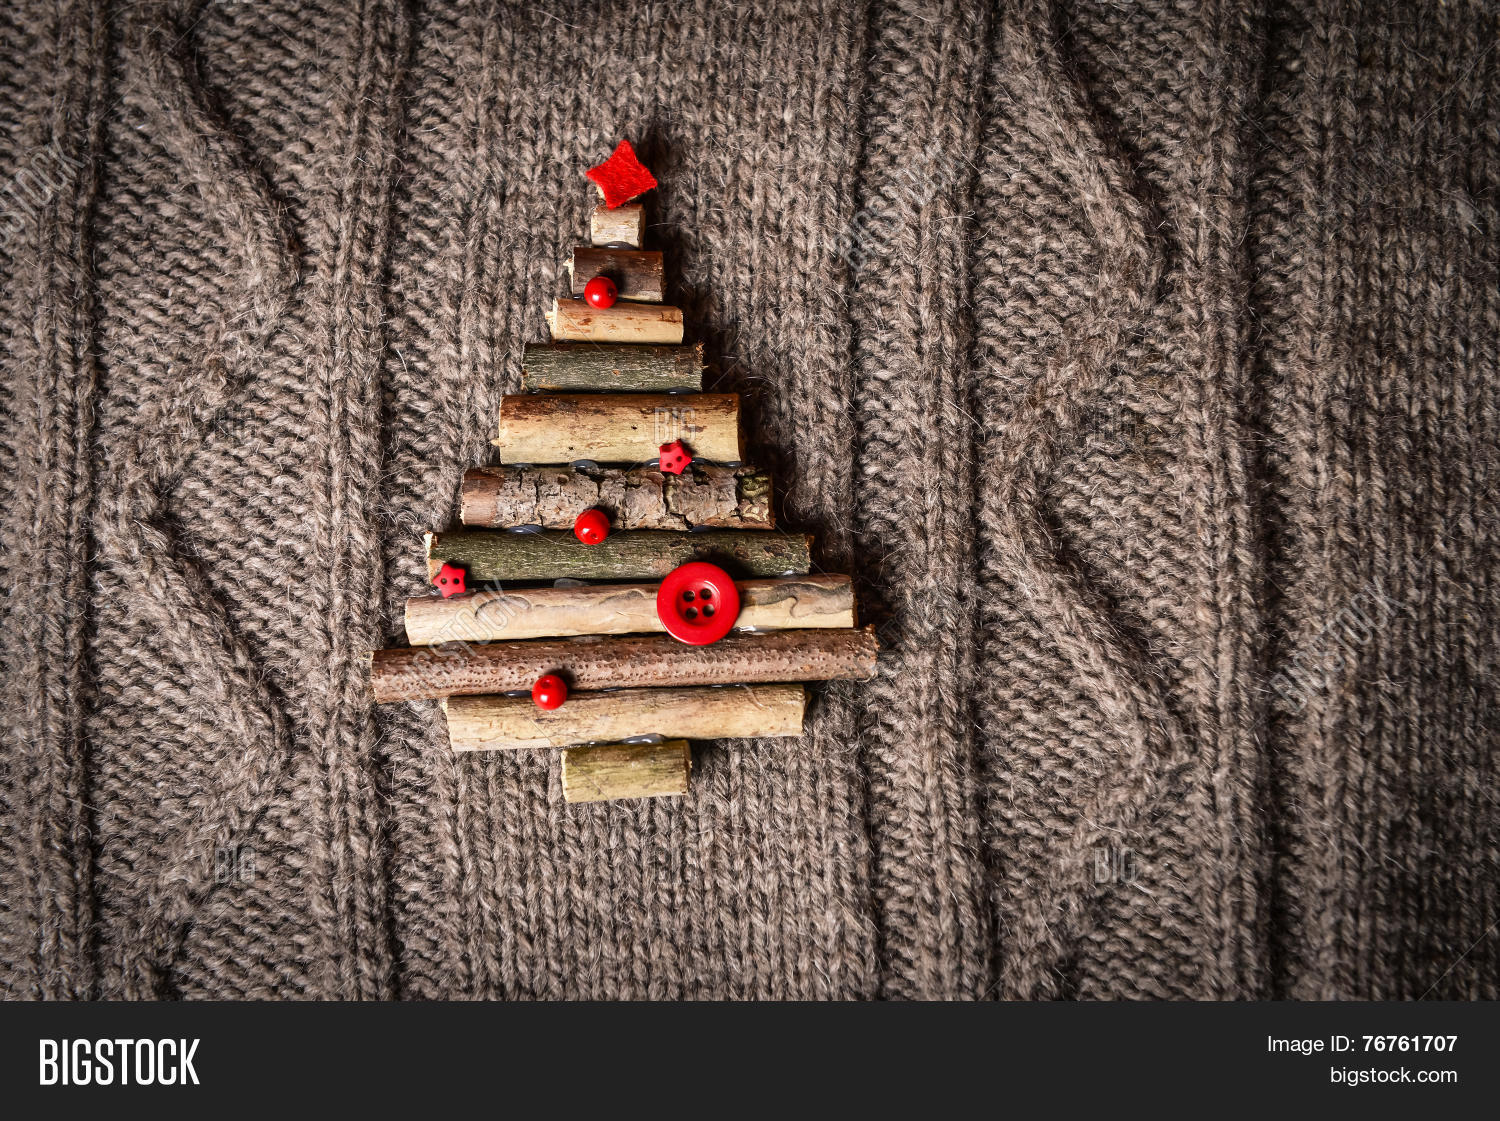 Christmas Warm Knitted Image & Free Trial